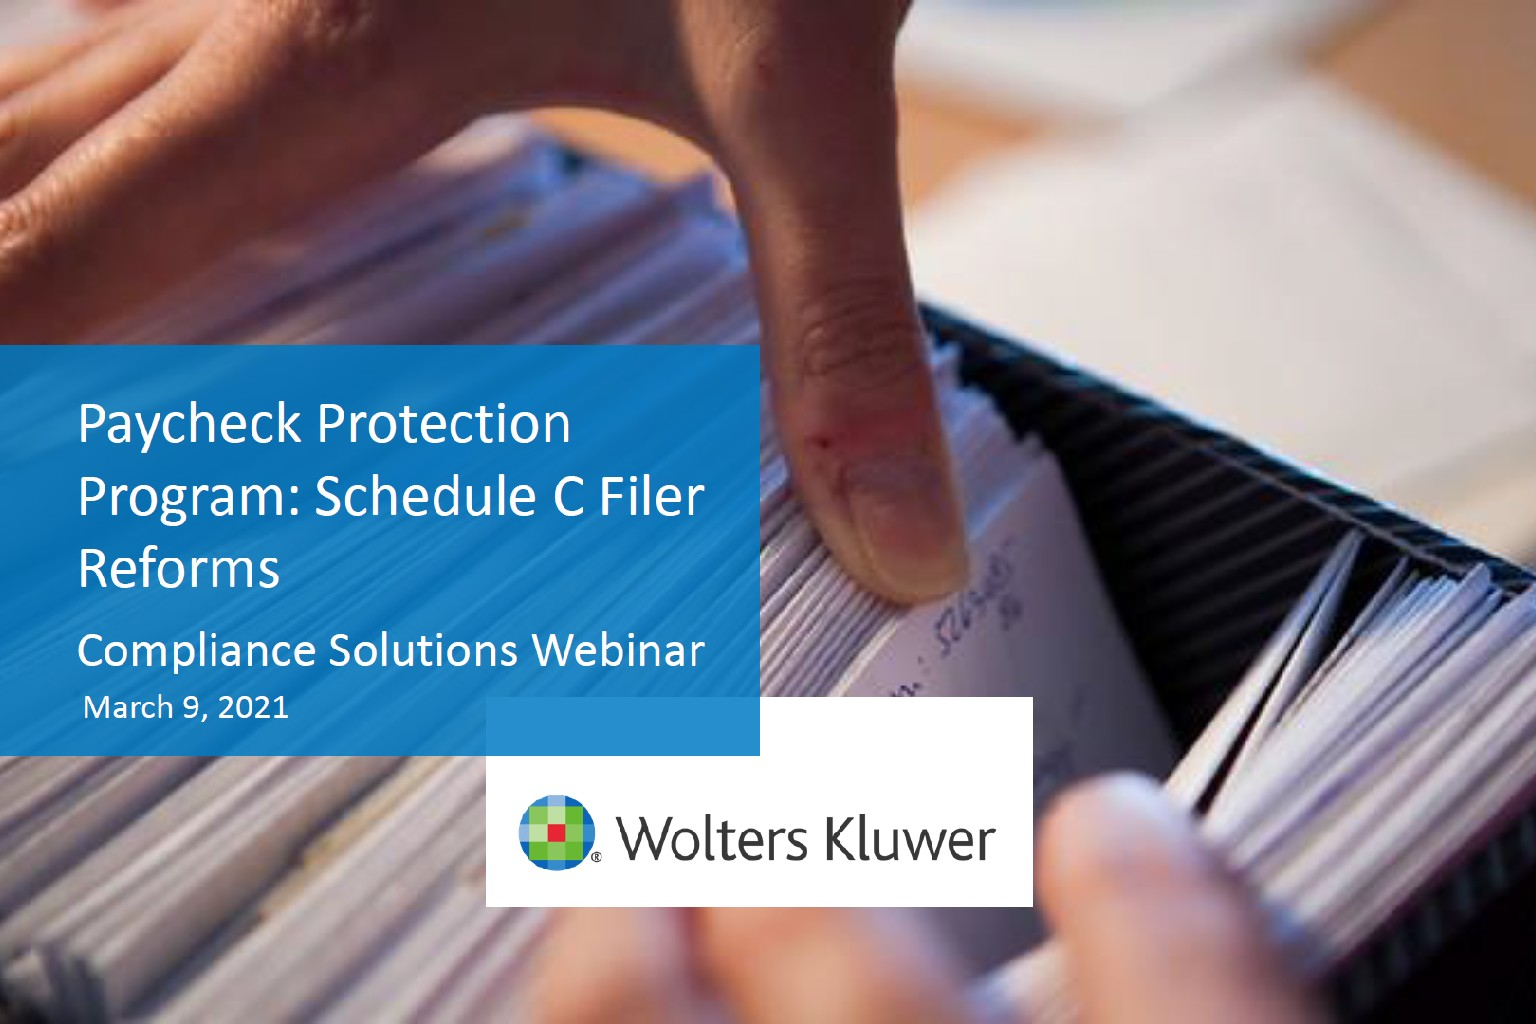 Paycheck Protection Program: Schedule C Filer Reforms